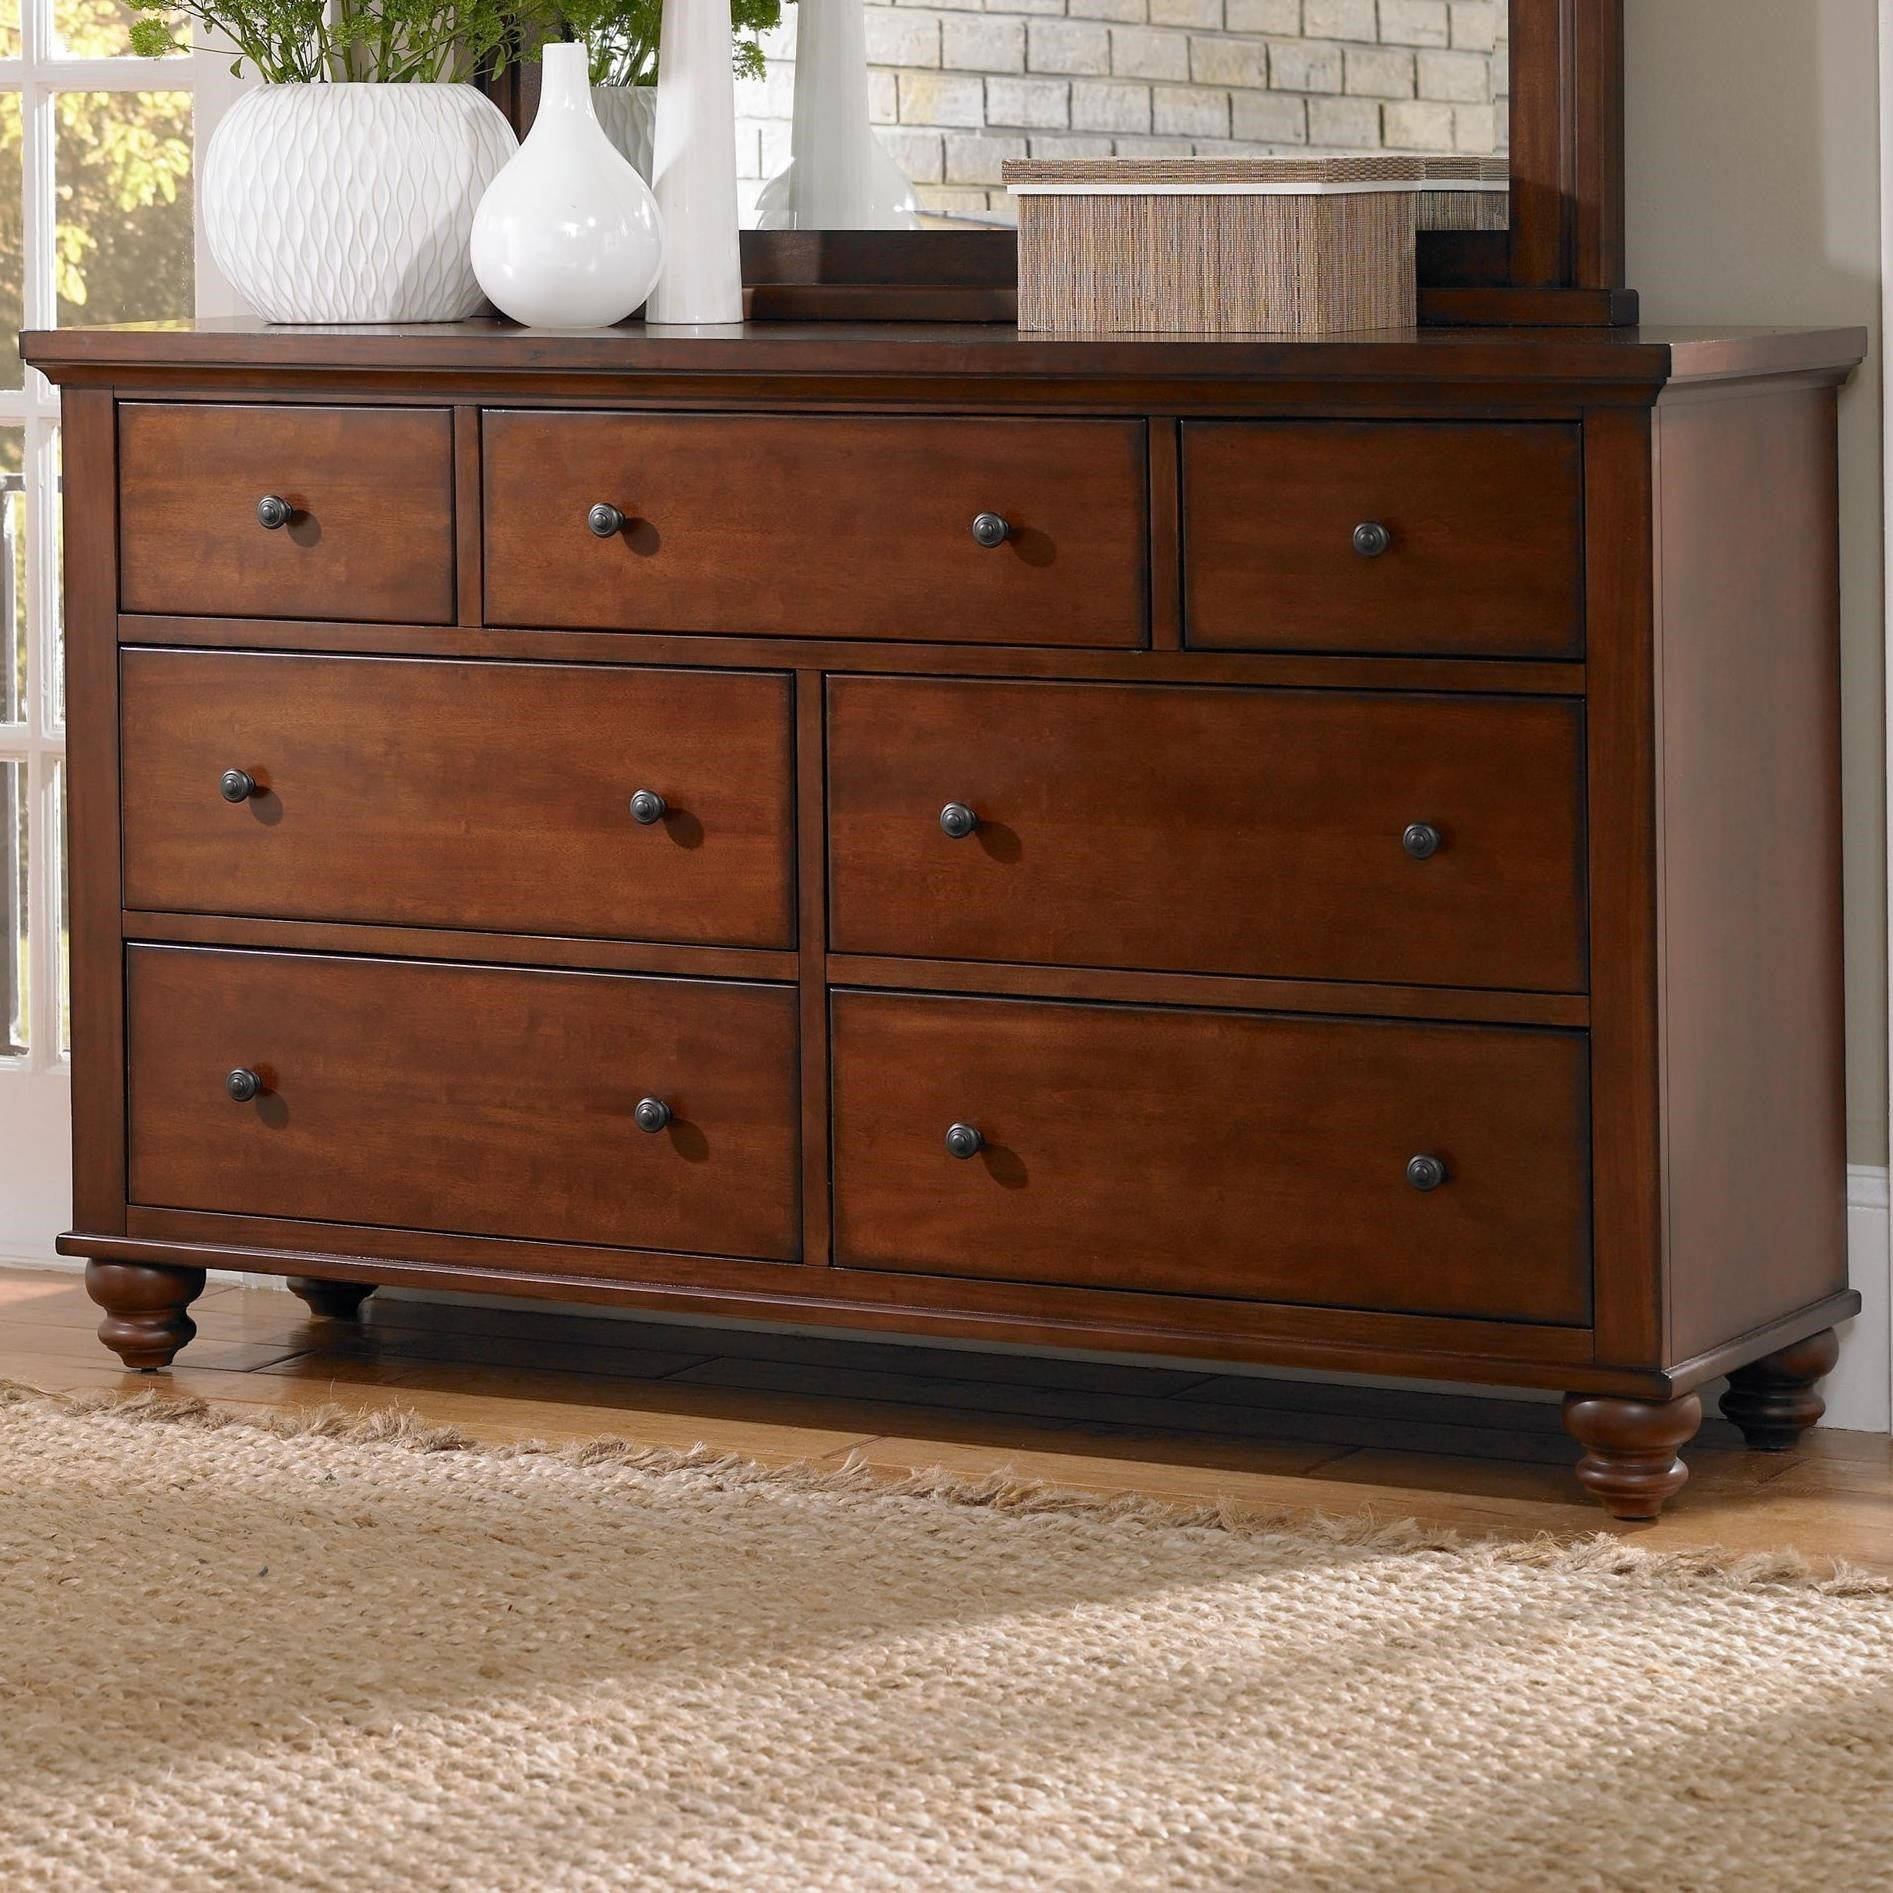 Cambridge 7 Drawer Double Dresser  by Aspenhome at Stoney Creek Furniture